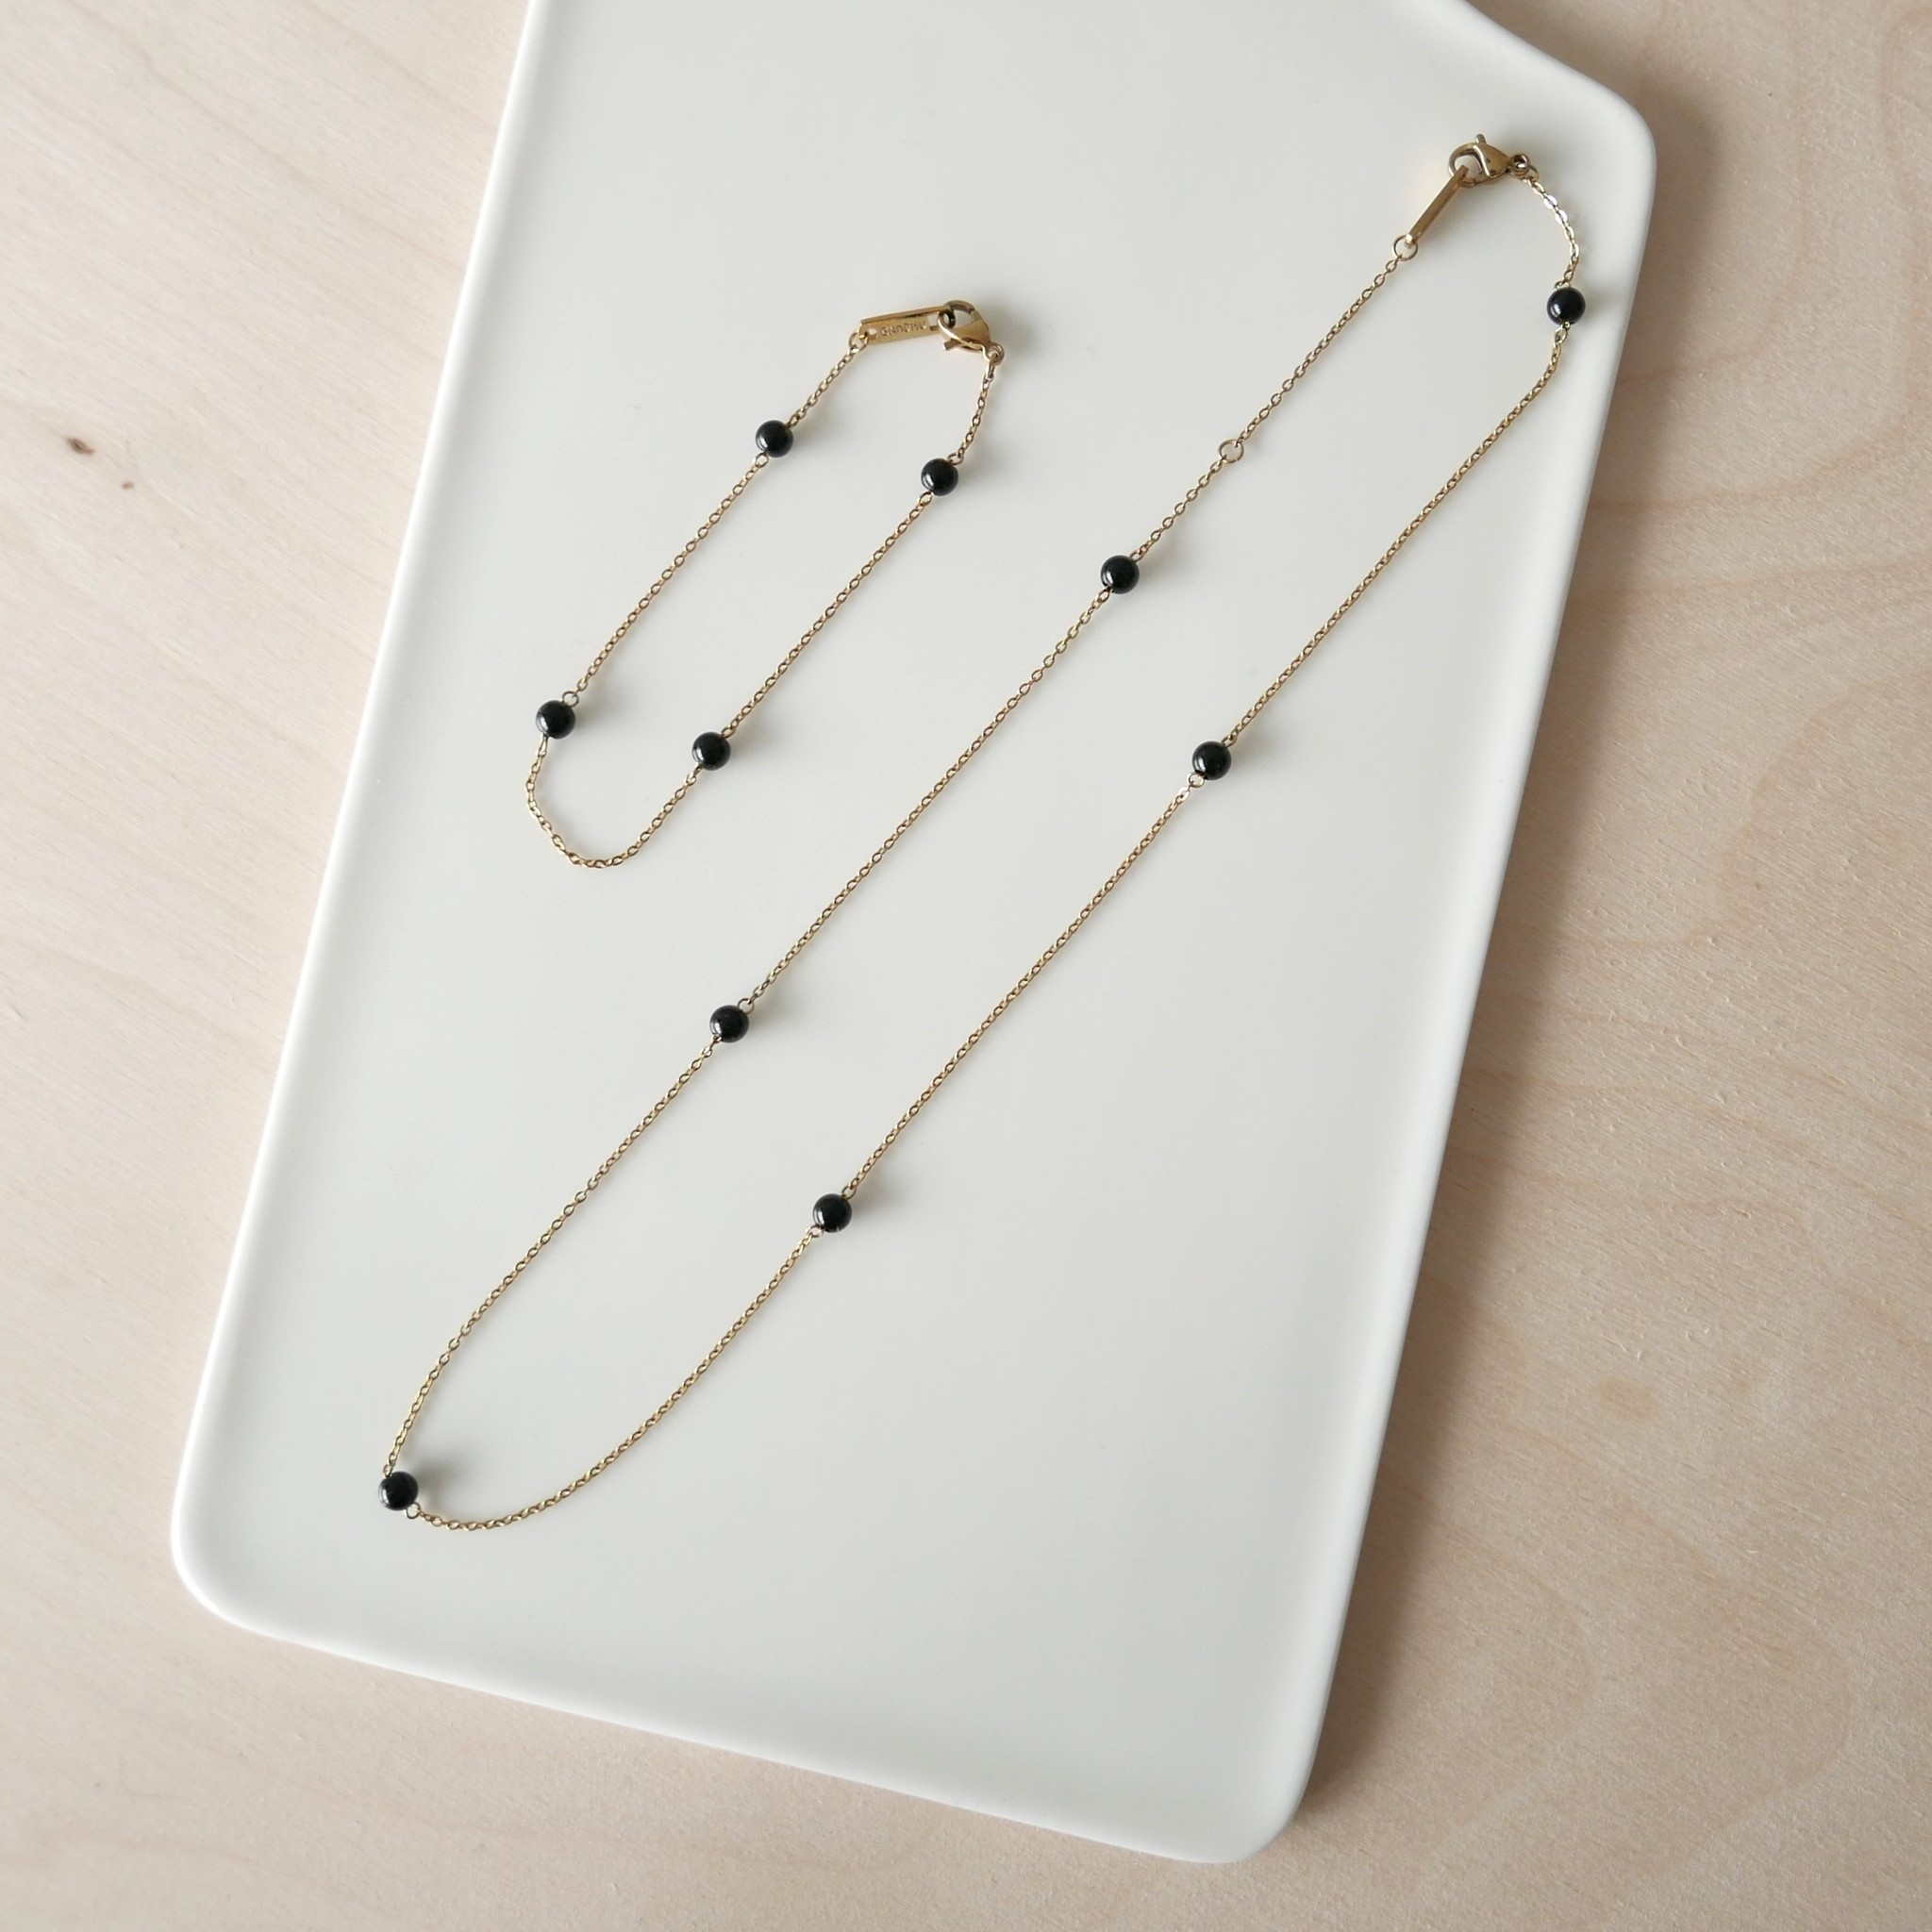 Energy Muse Necklace - Gold with Black Onyx-3